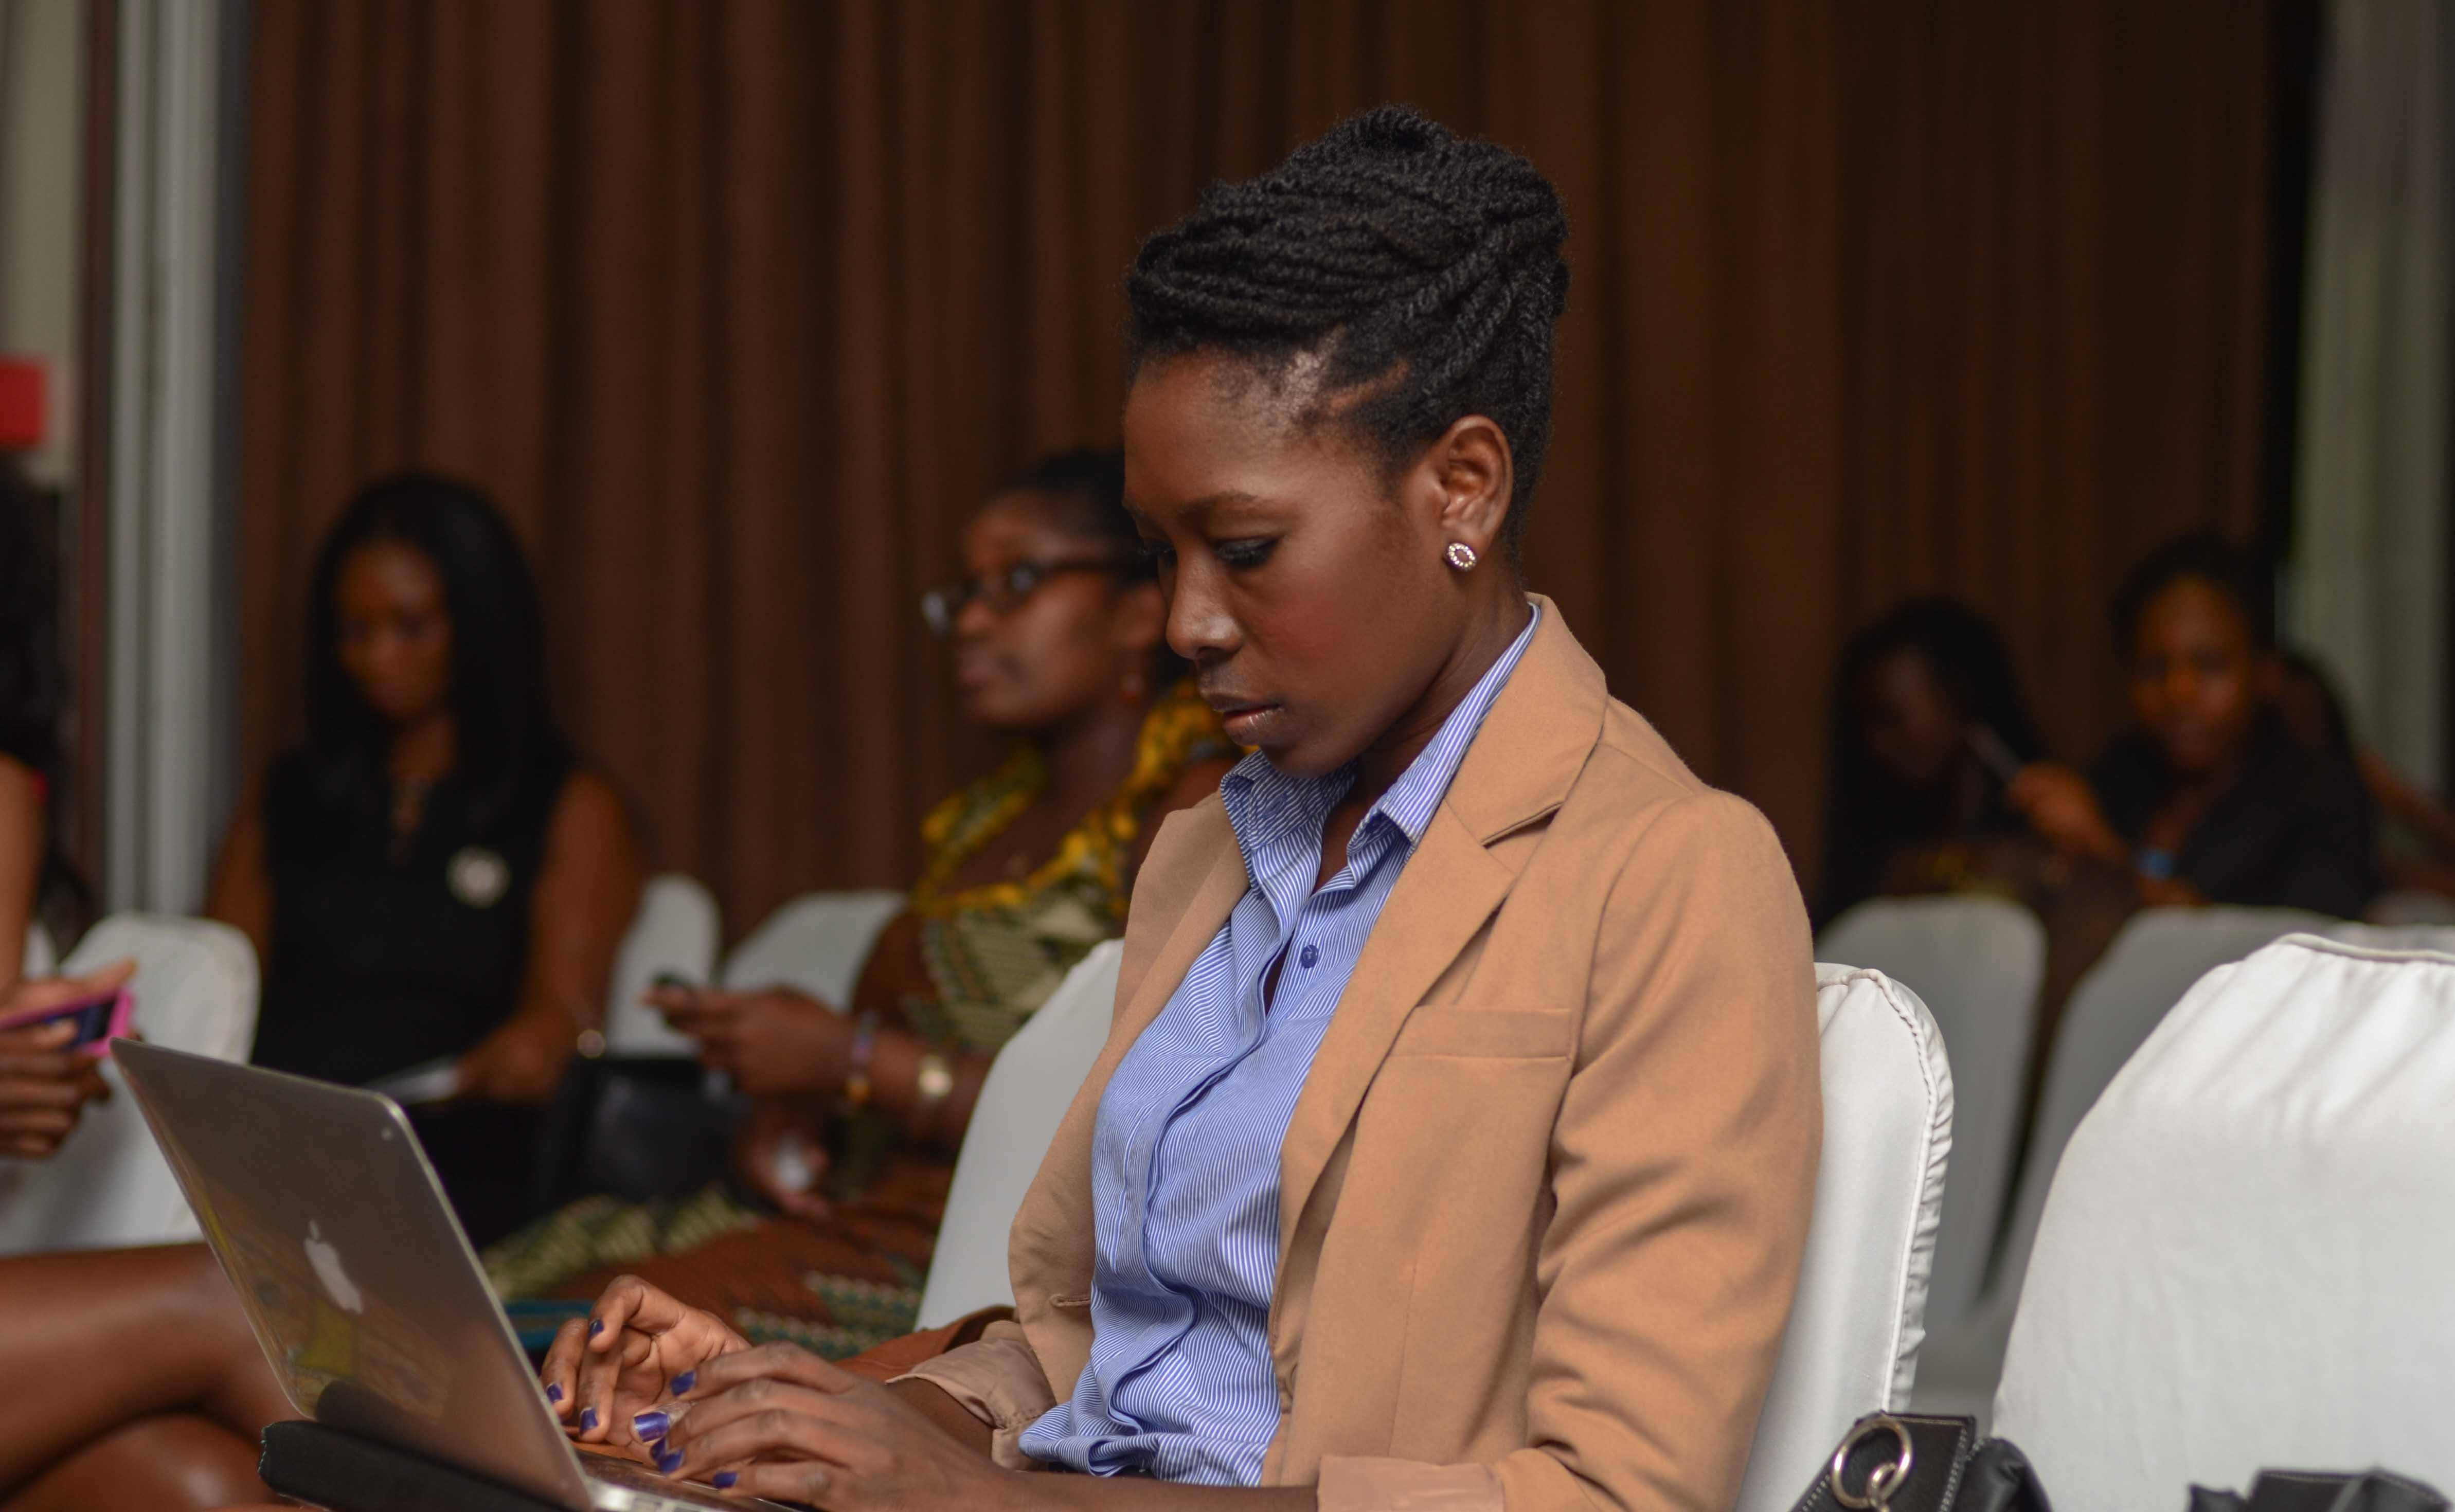 She Leads Africa Is Organising A Female-centric Pitch Competition With Over $10,000 Up For Grabs